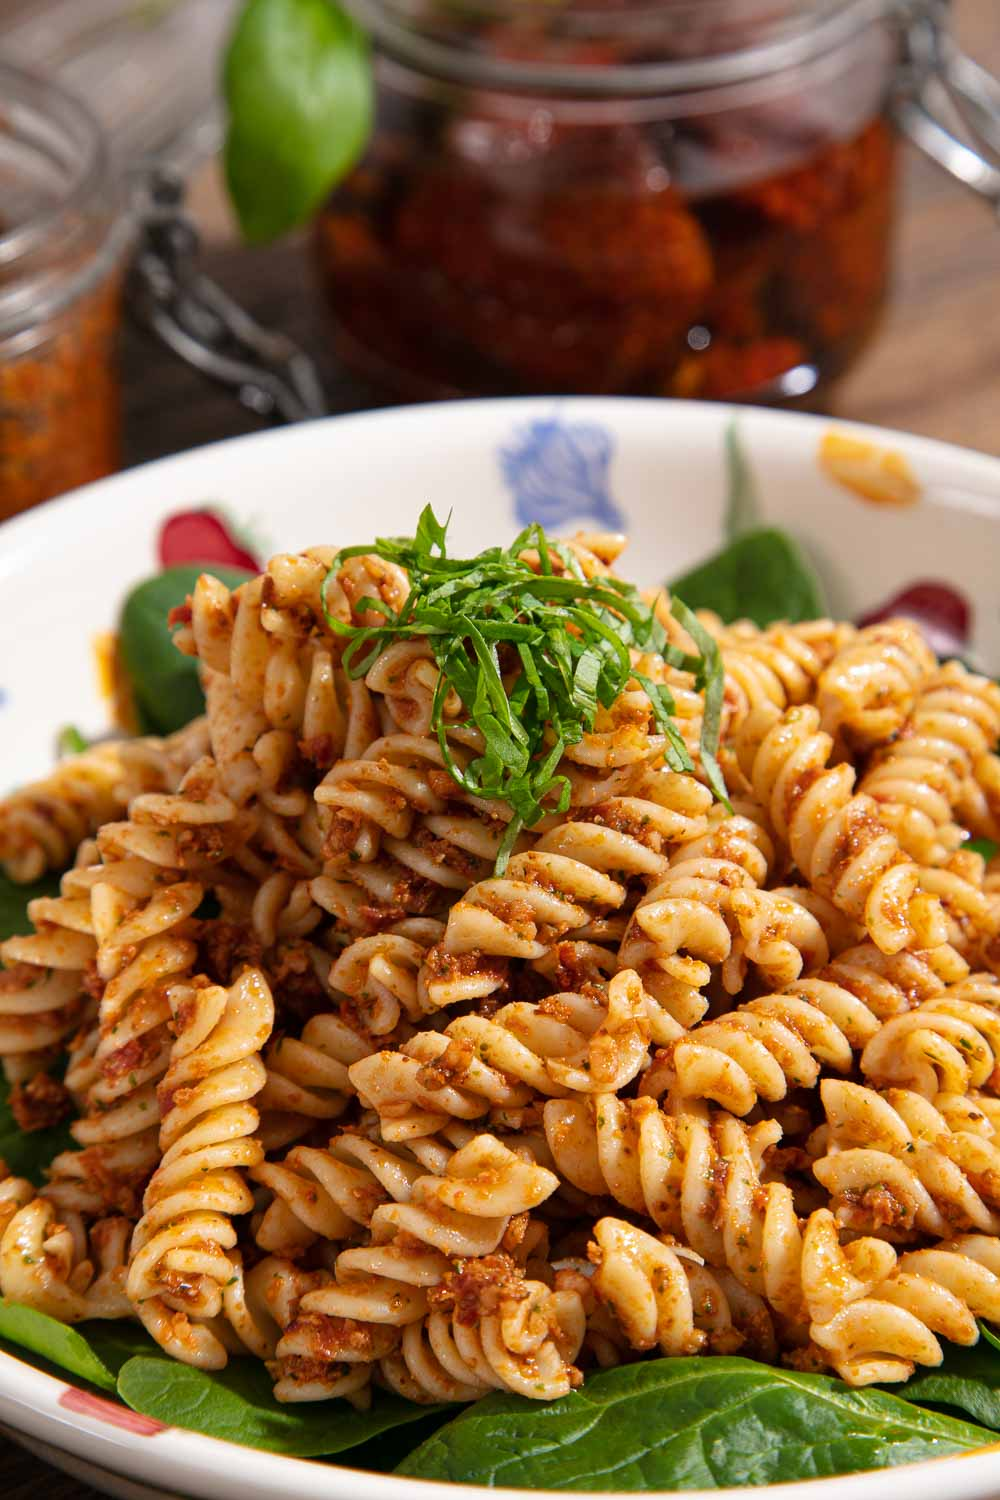 A bowl of red pesto pasta topped with shredded basil.